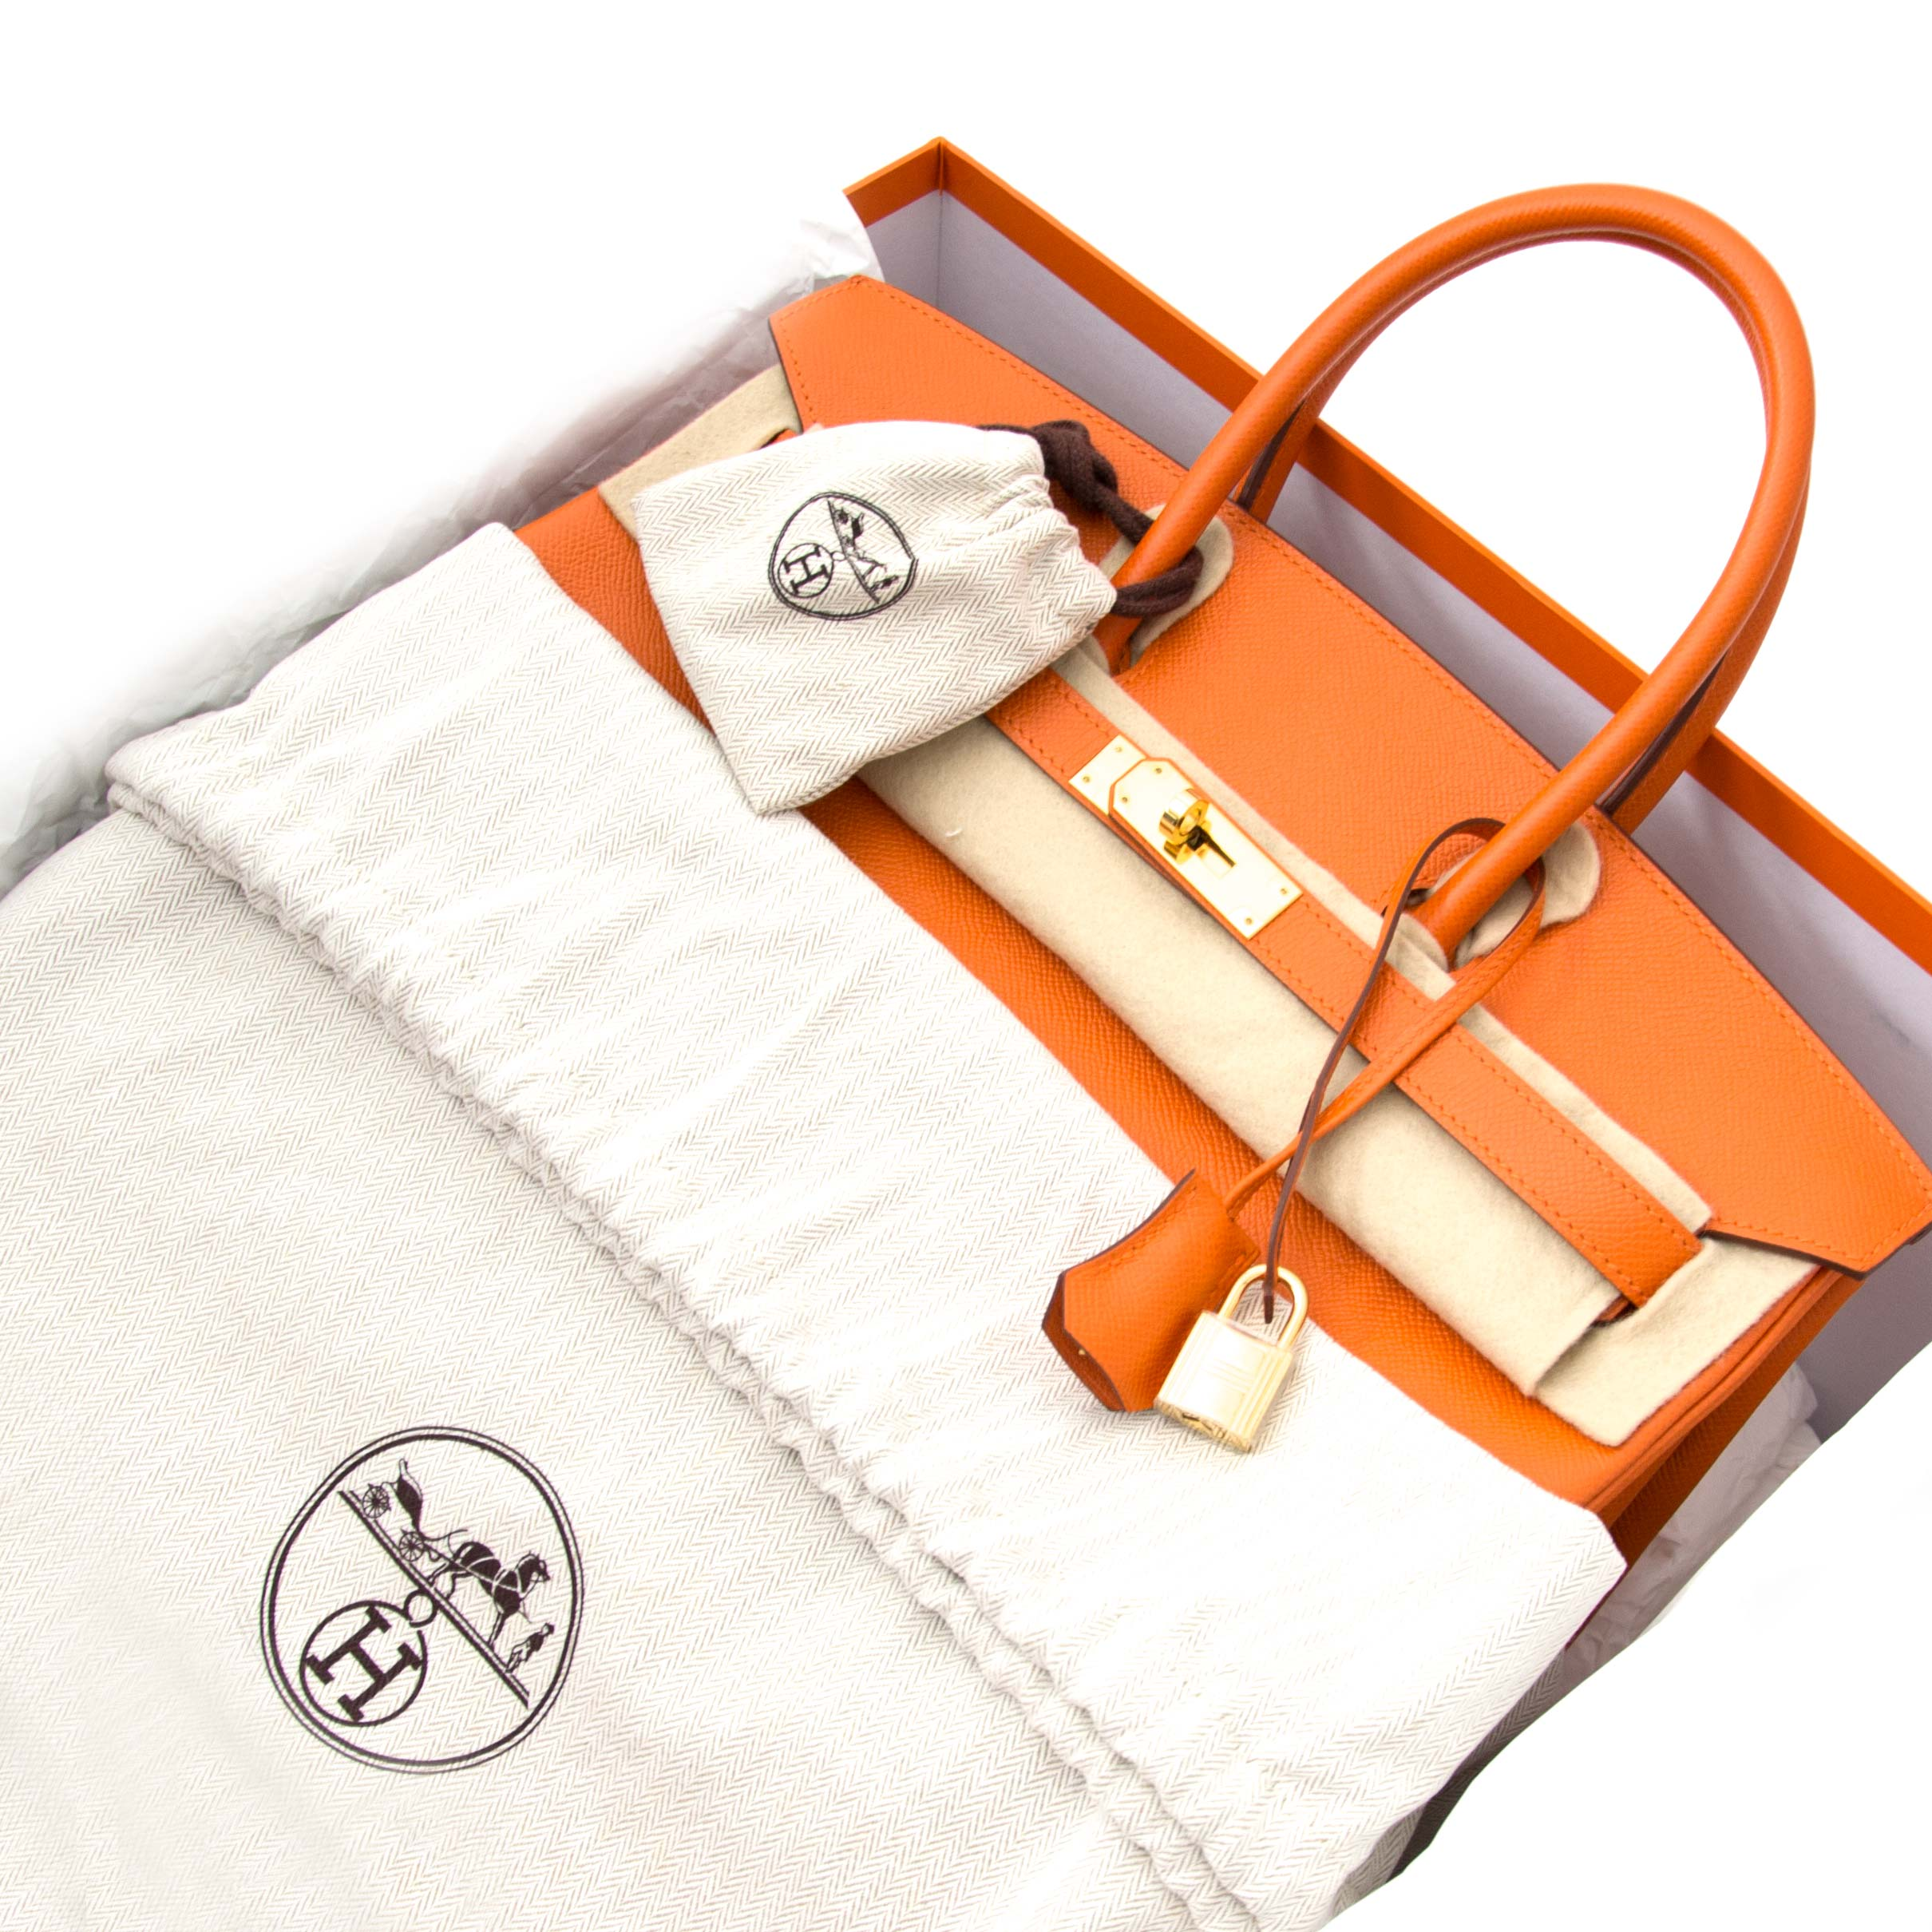 skip the waitinglist and get your hermes birkin orange epsom ghw right now at labellov.com, wordwide shipping